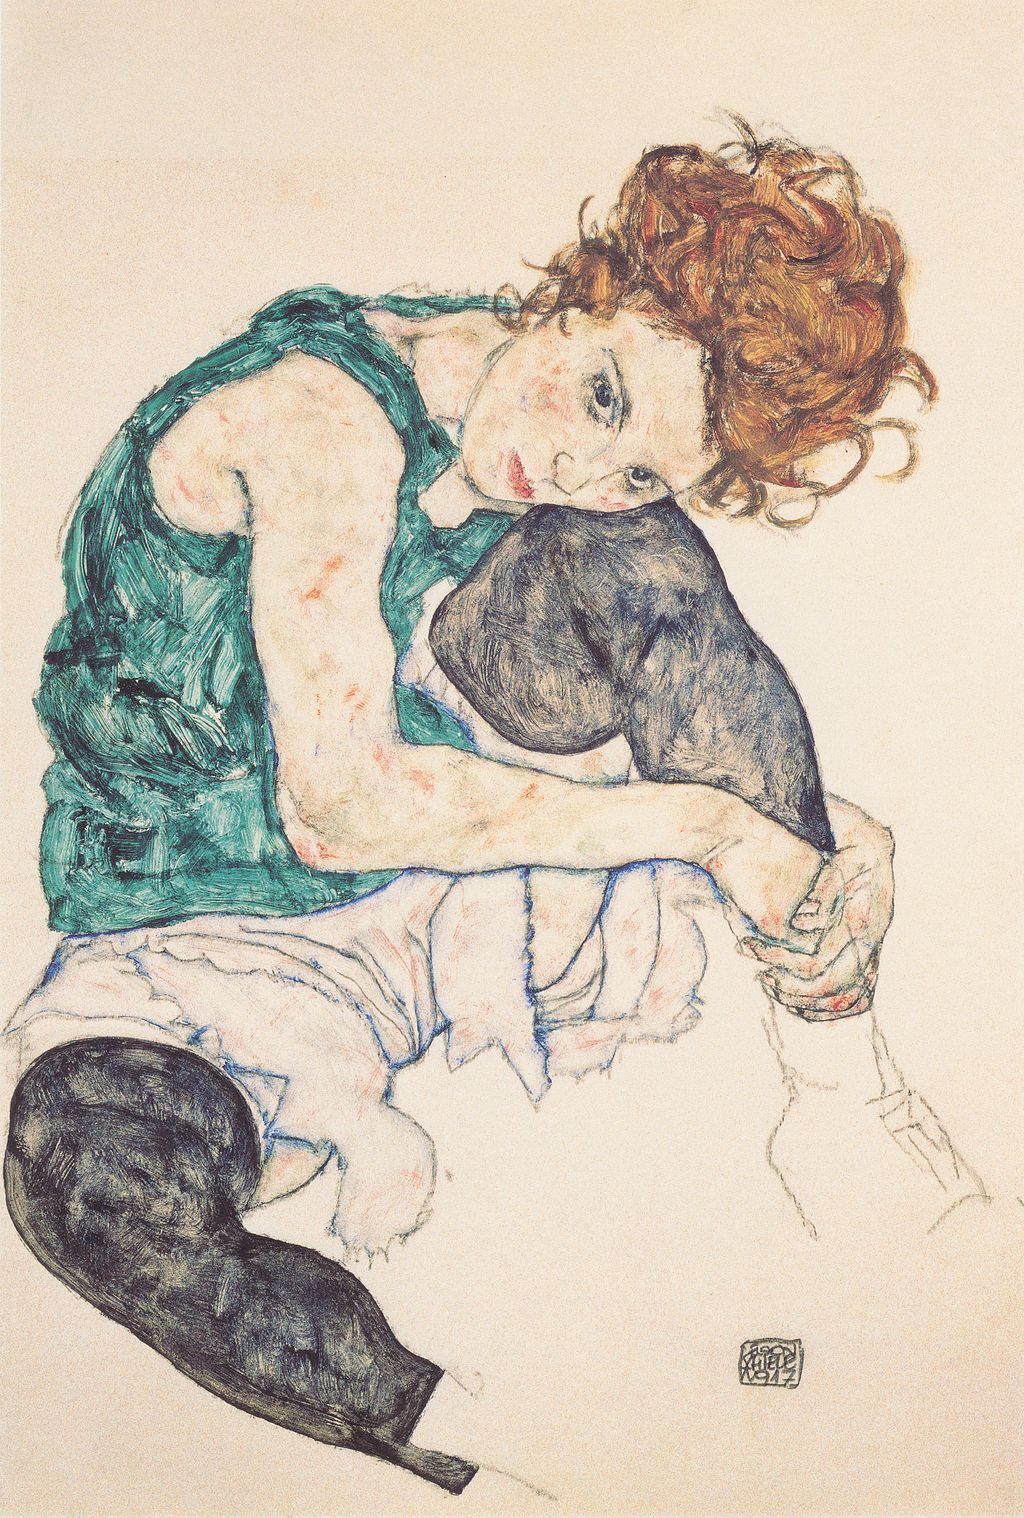 https://media.thisisgallery.com/wp-content/uploads/2018/12/egonschiele_26.jpg